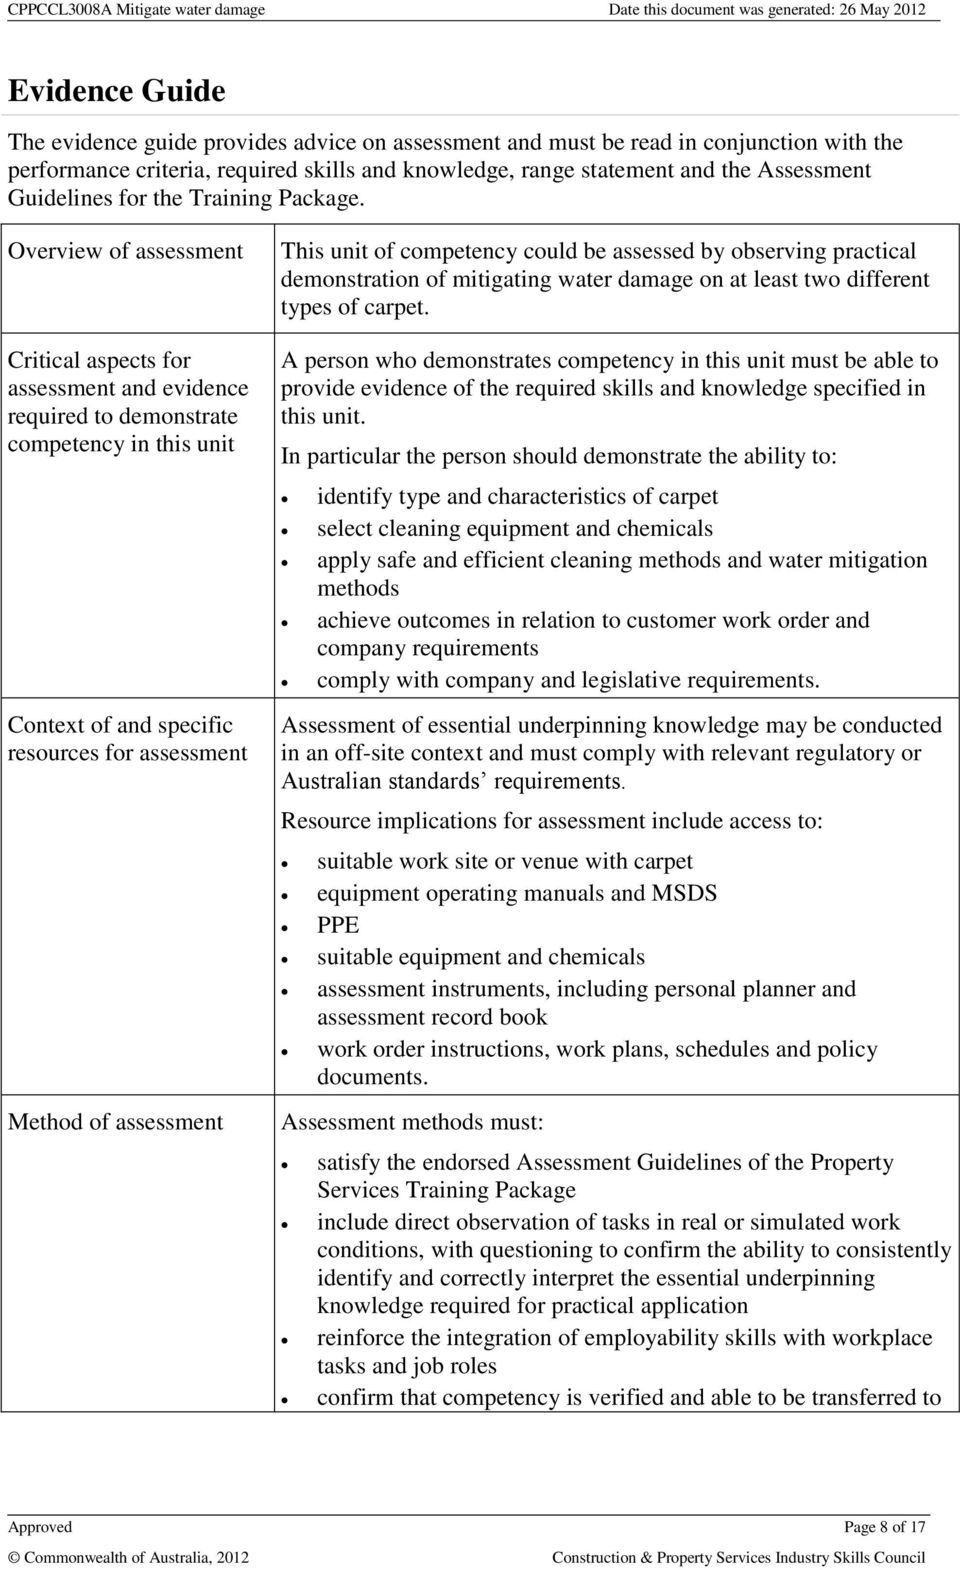 Overview of assessment Critical aspects for assessment and evidence required to demonstrate competency in this unit Context of and specific resources for assessment Method of assessment This unit of